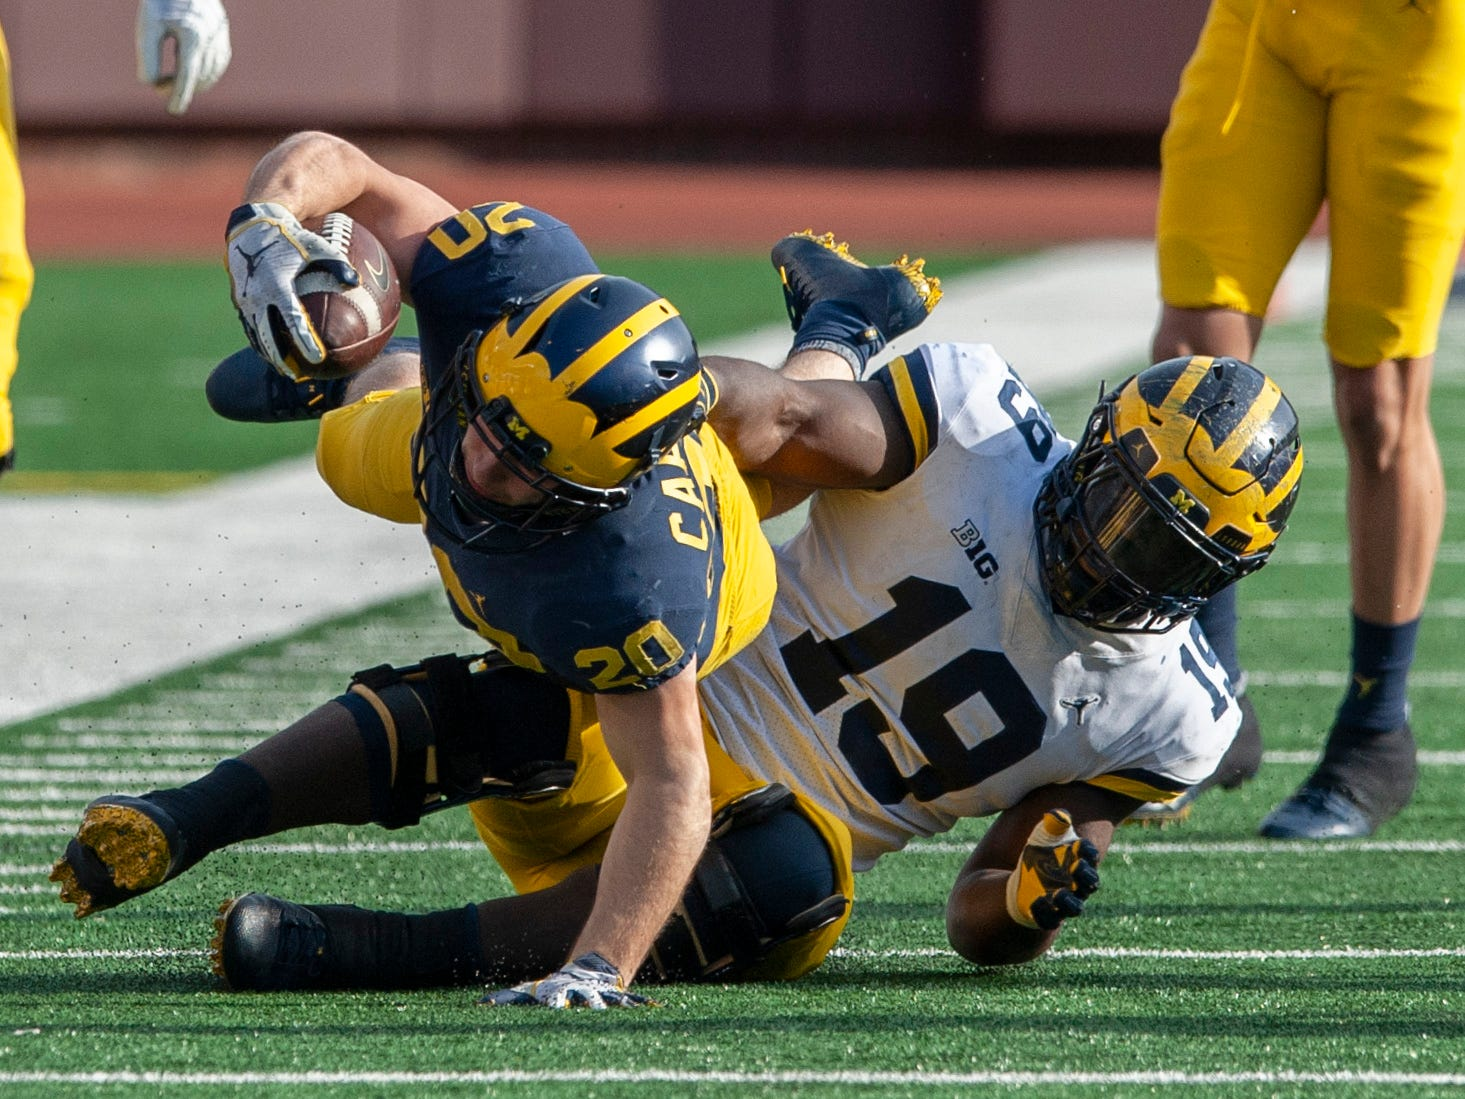 Michigan RB Nicholas Capatina stretches for extra yardage as he is taken down by DL Kwity Paye (19).